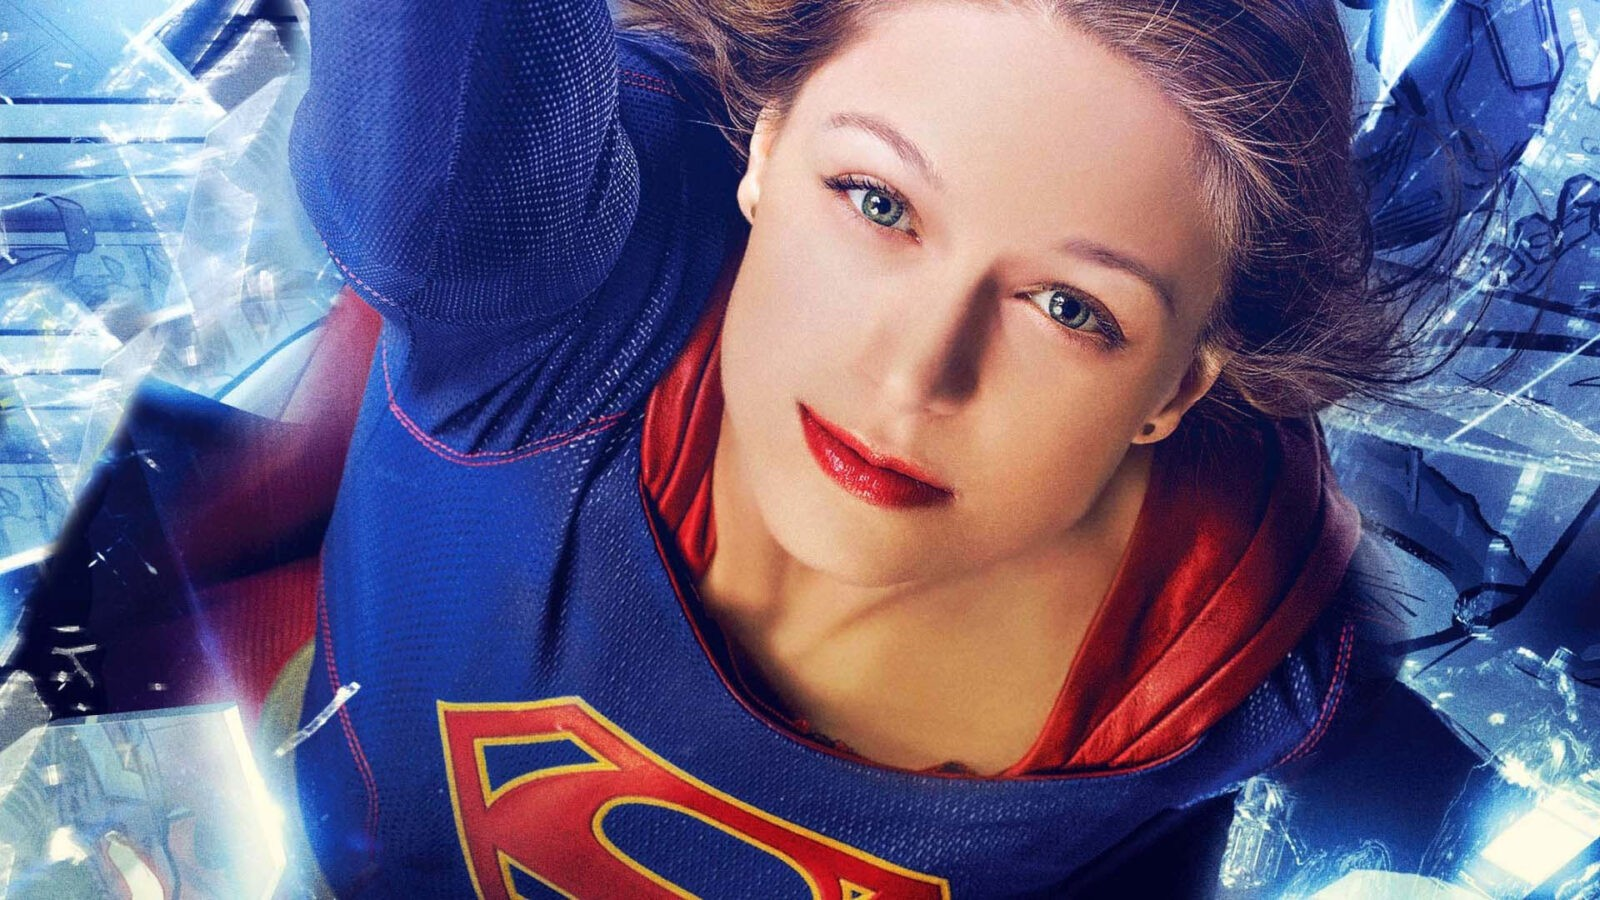 37 melissa benoist hd wallpapers free download for Tv show with tattooed woman